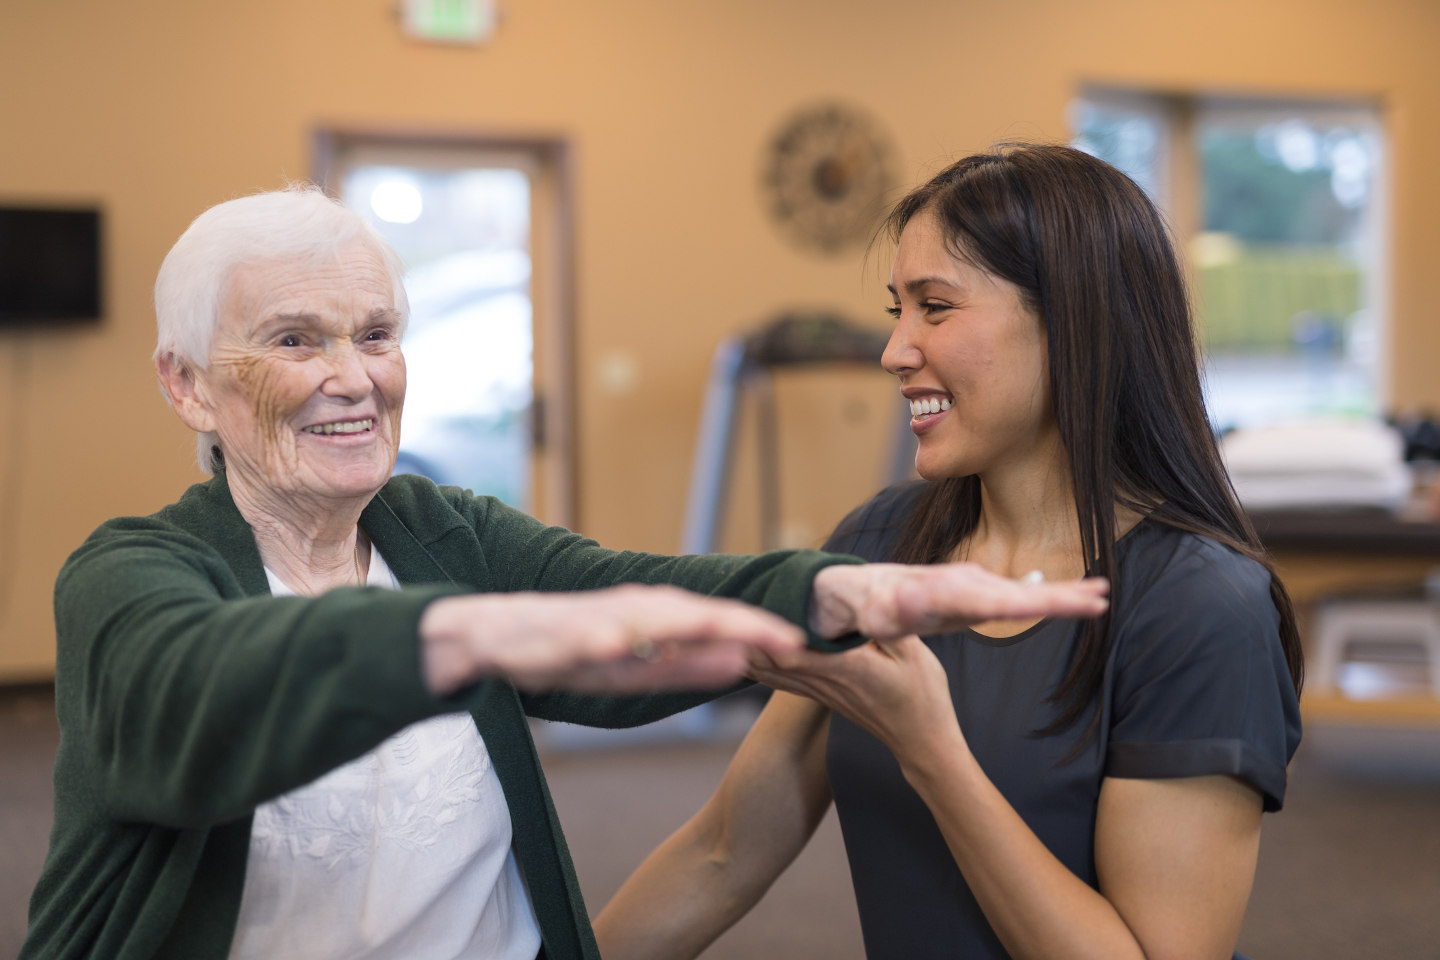 A female occupational therapist of Asian descent works with a cheerful senior female as she does exercises on an exercise ball. She is helping steady her as she holds her arms out.